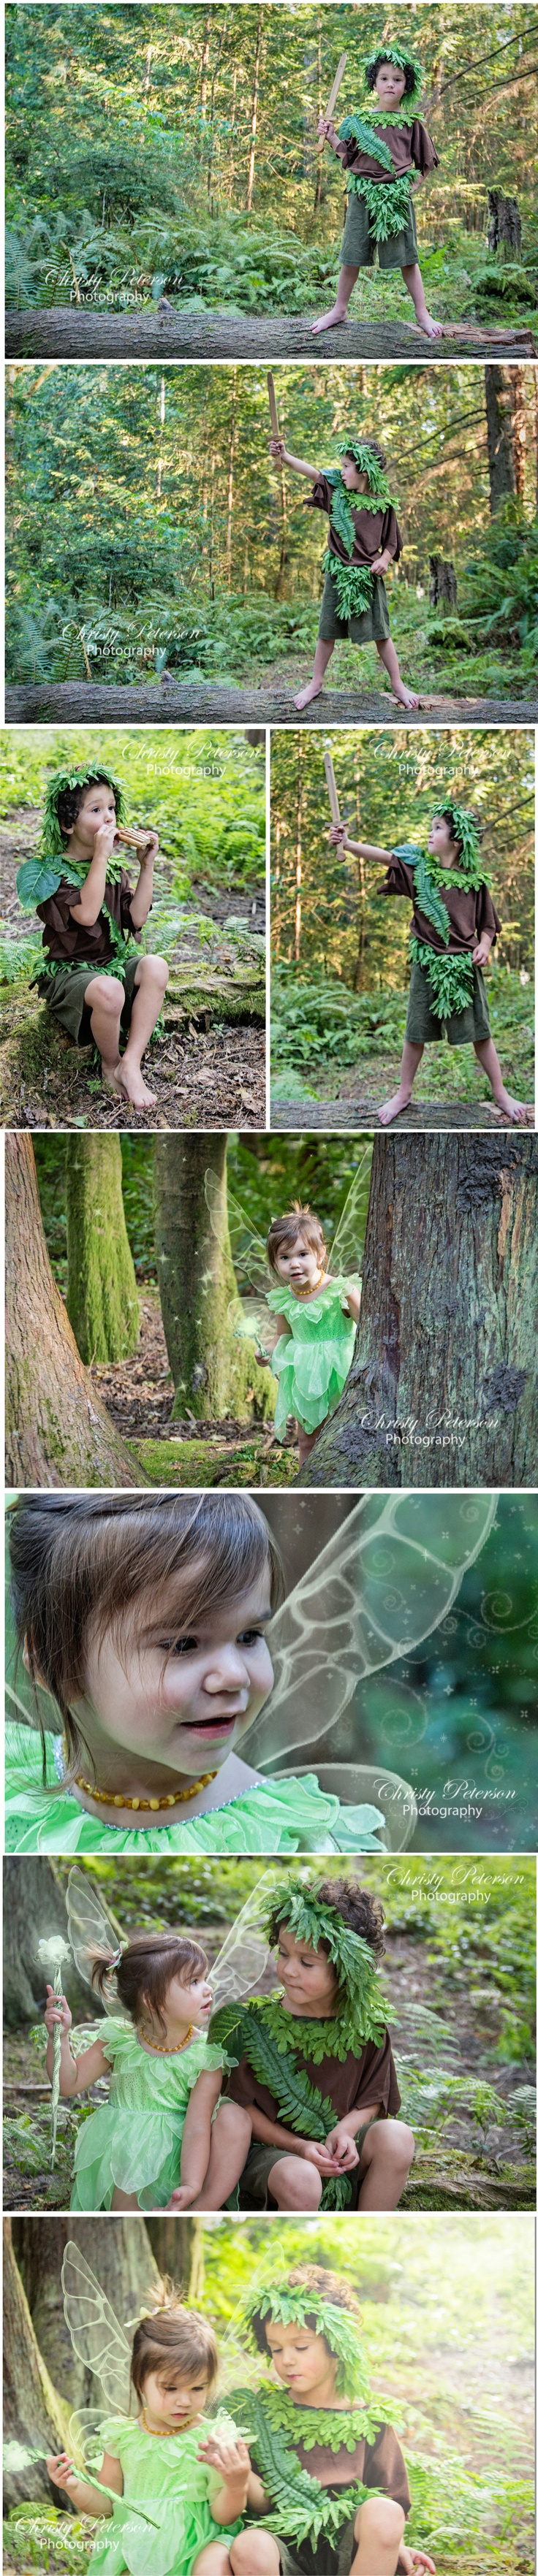 Peter Pan and Tinkerbell Photography Session Christypetersonphotography.com